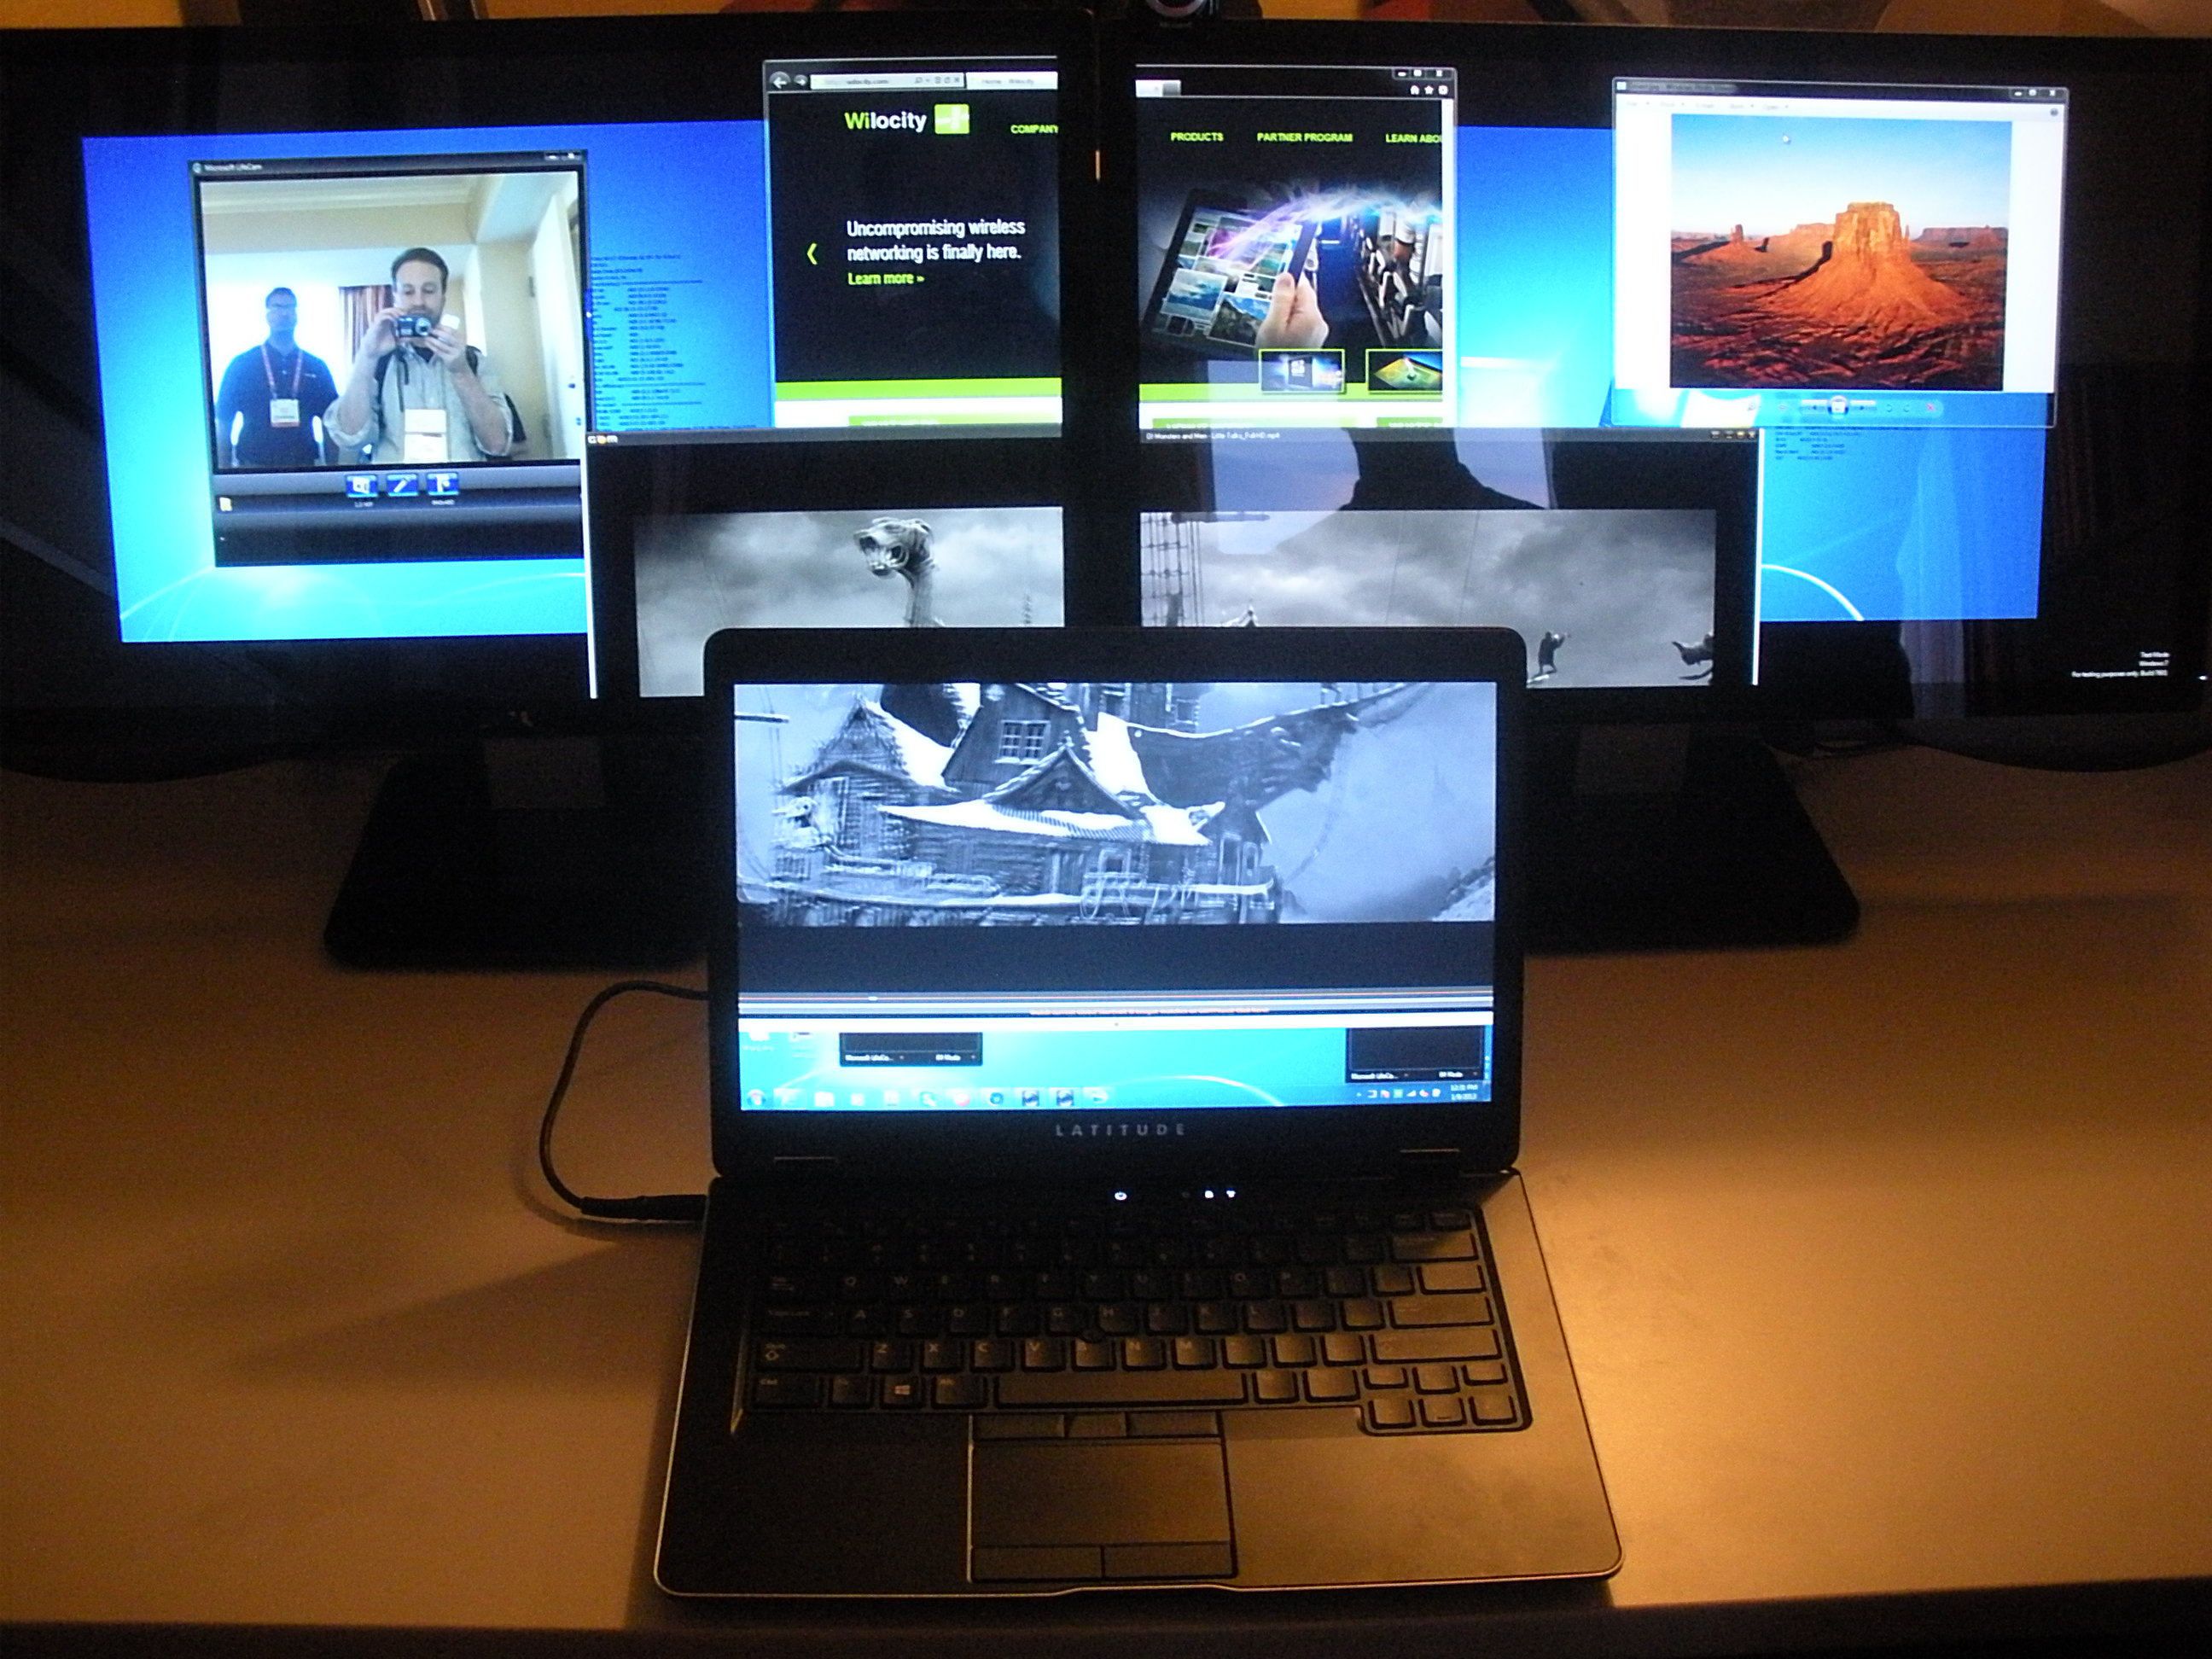 An Ultrabook powering two monitors, wirelessly through WiGig.